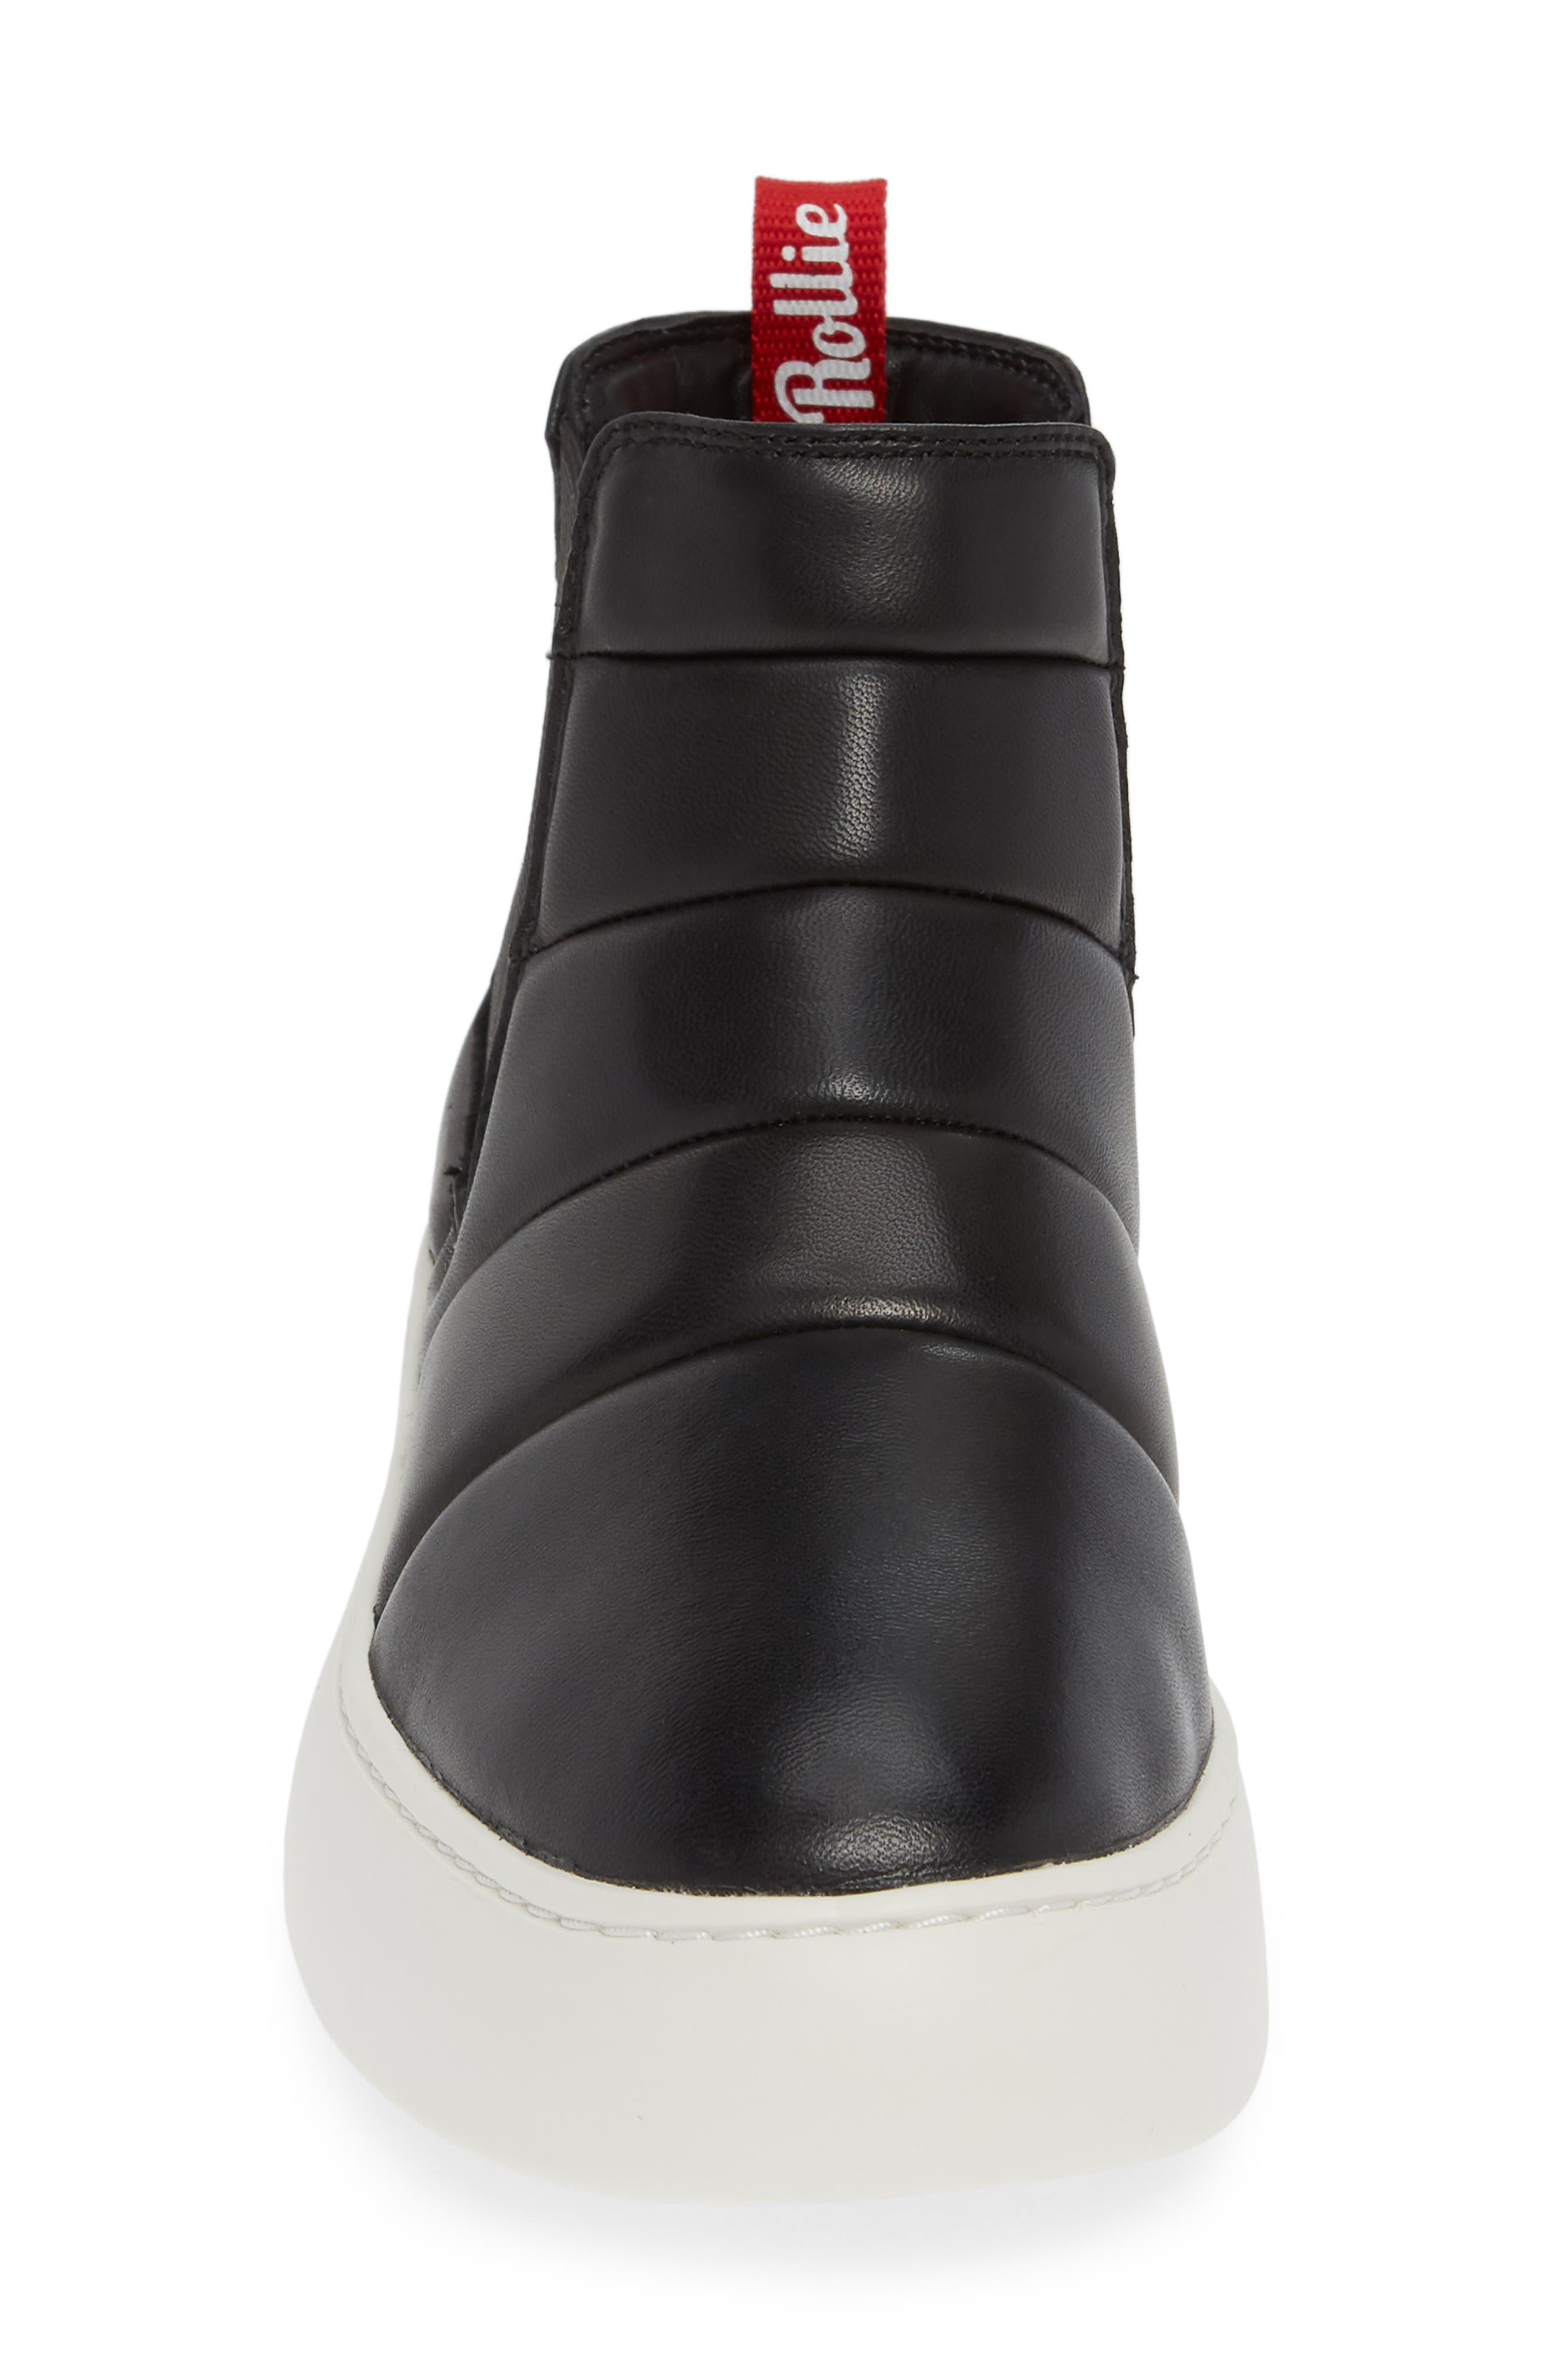 Snow City Quilted Chelsea Sneaker Boot,                             Alternate thumbnail 4, color,                             BLACK NAPPA